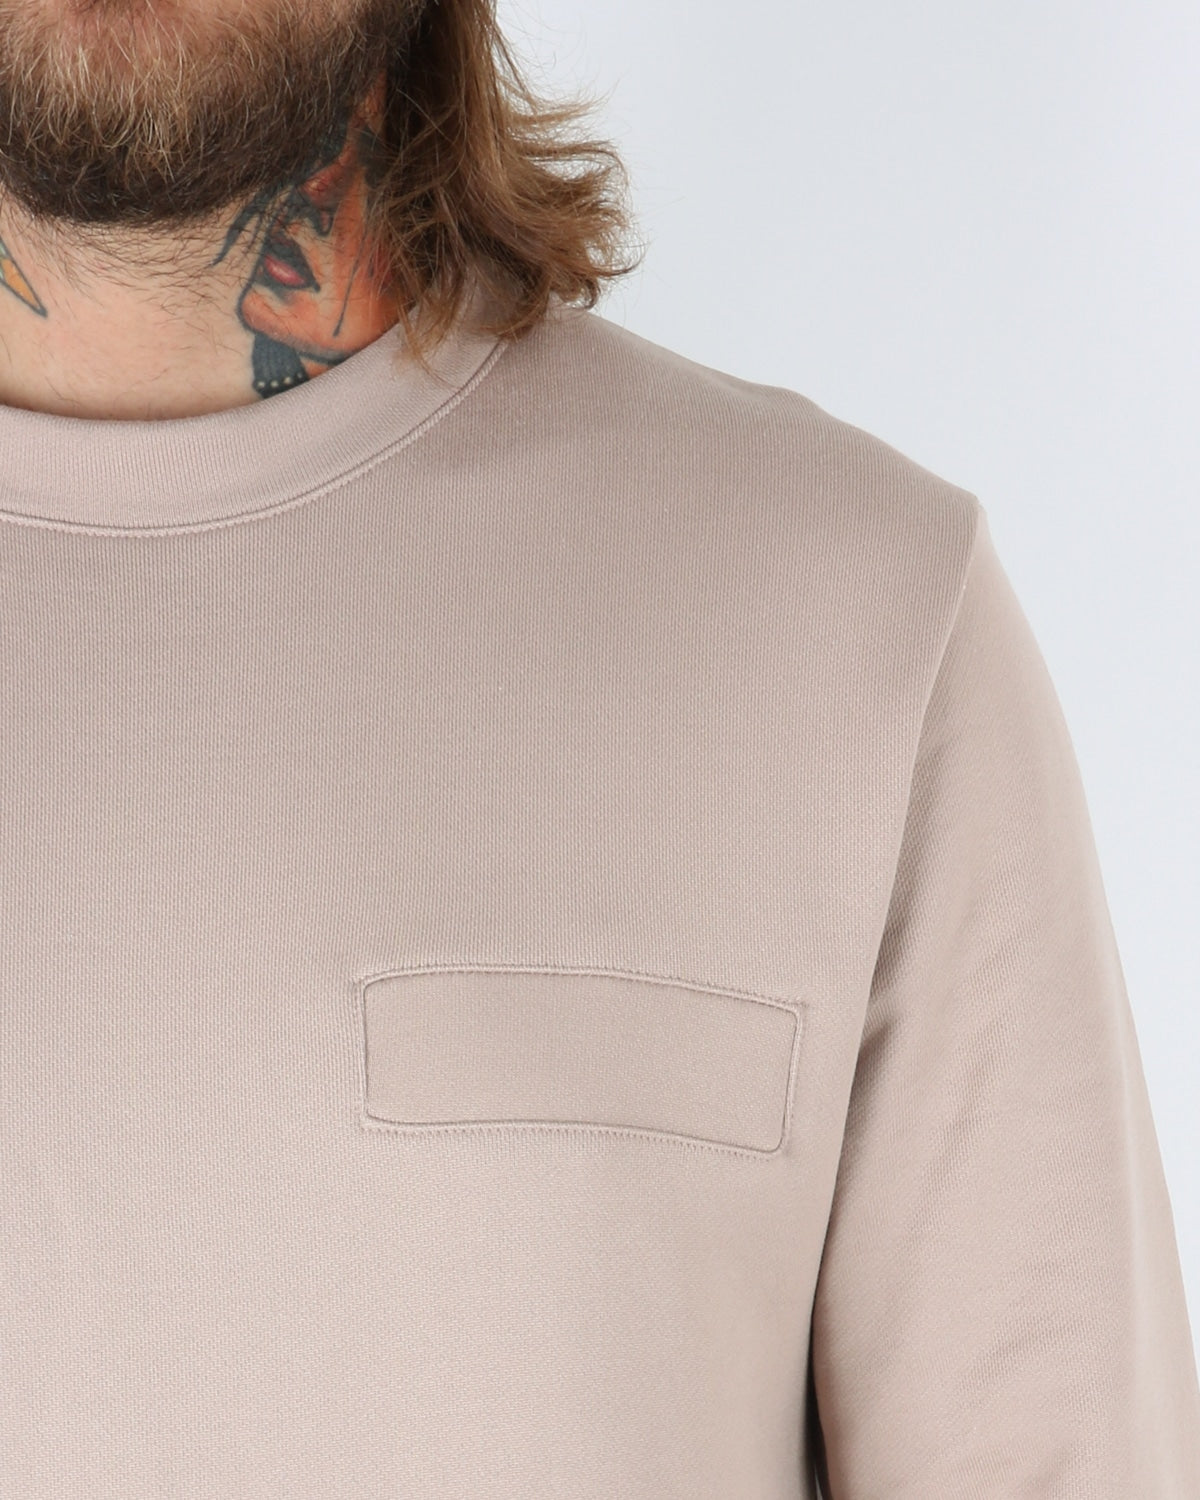 libertine libertine_east sweatshirt_nude_view_3_3